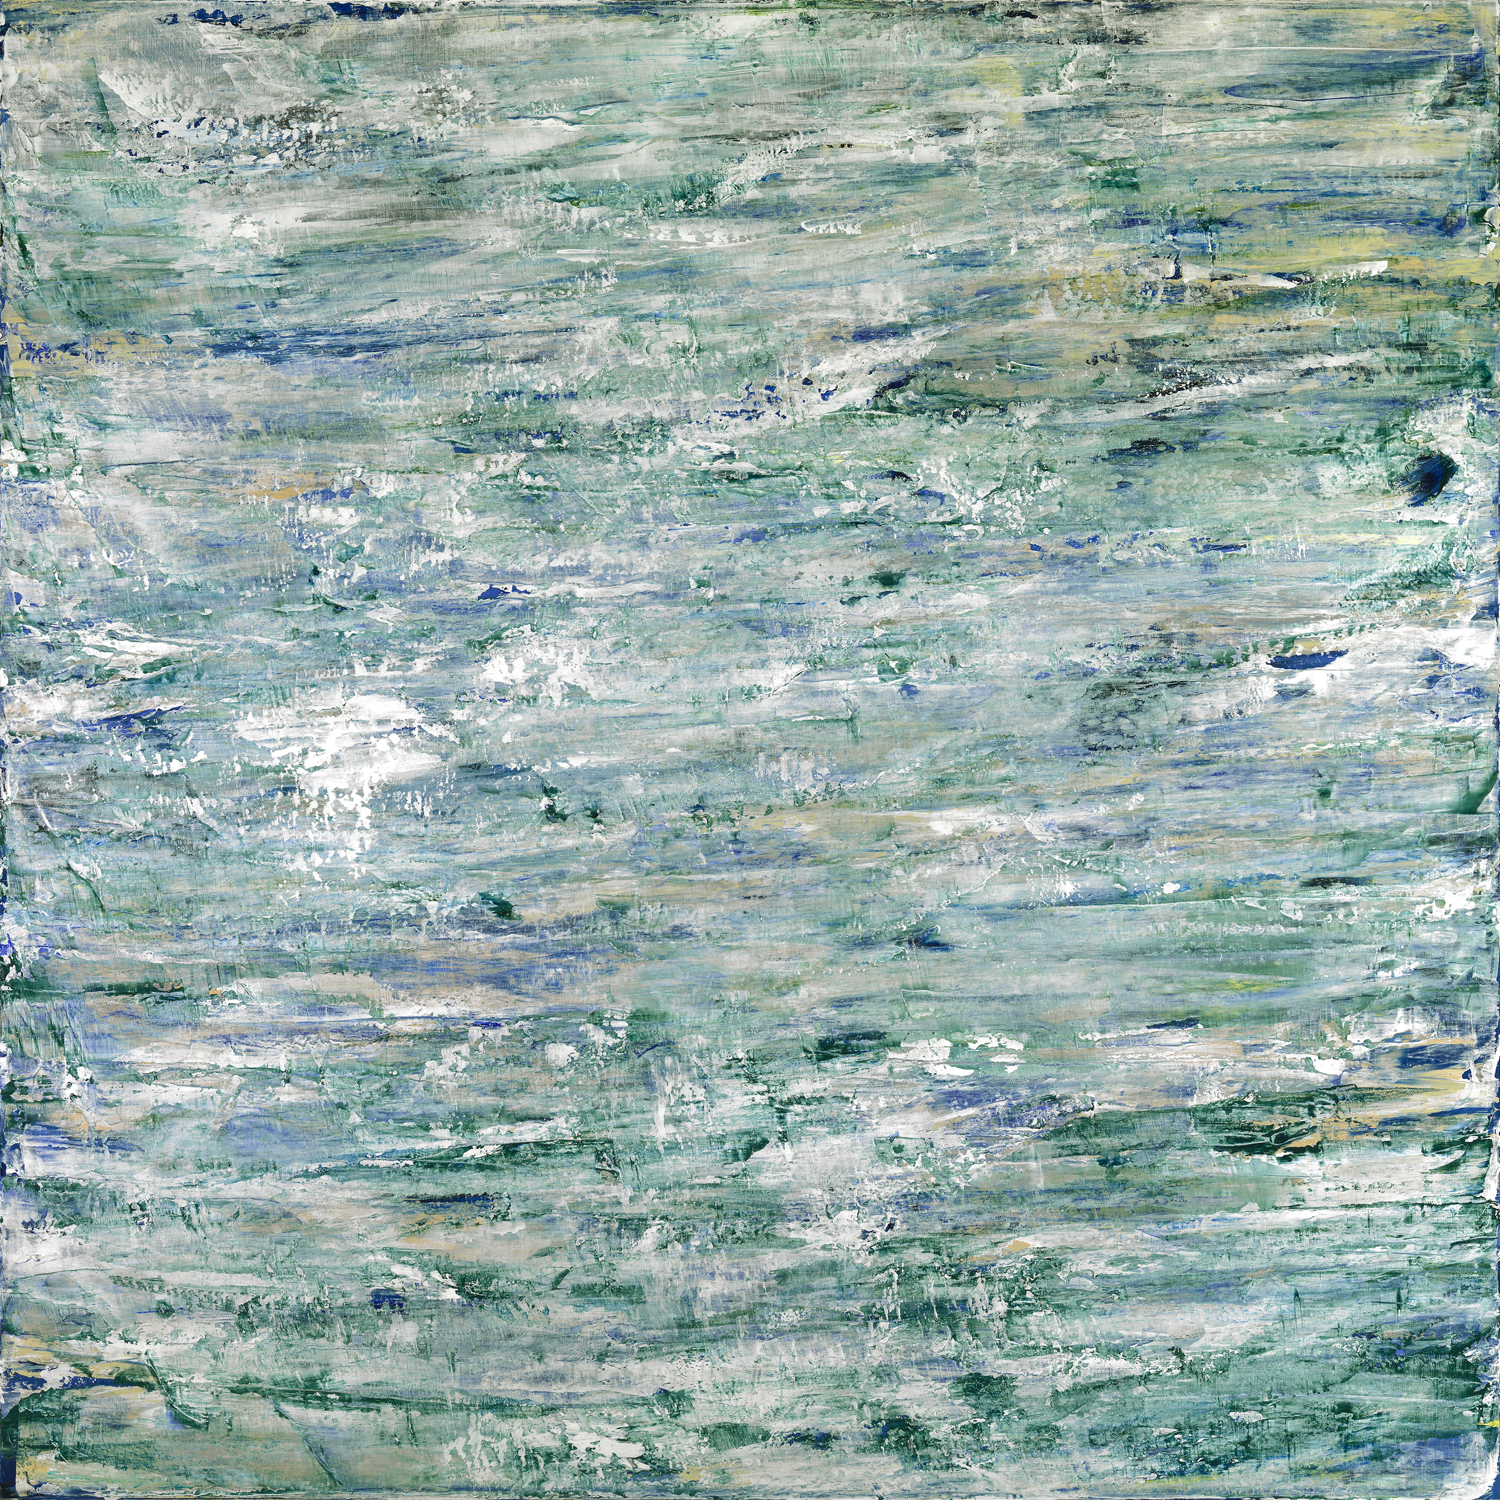 Water Study 006 36x36.png